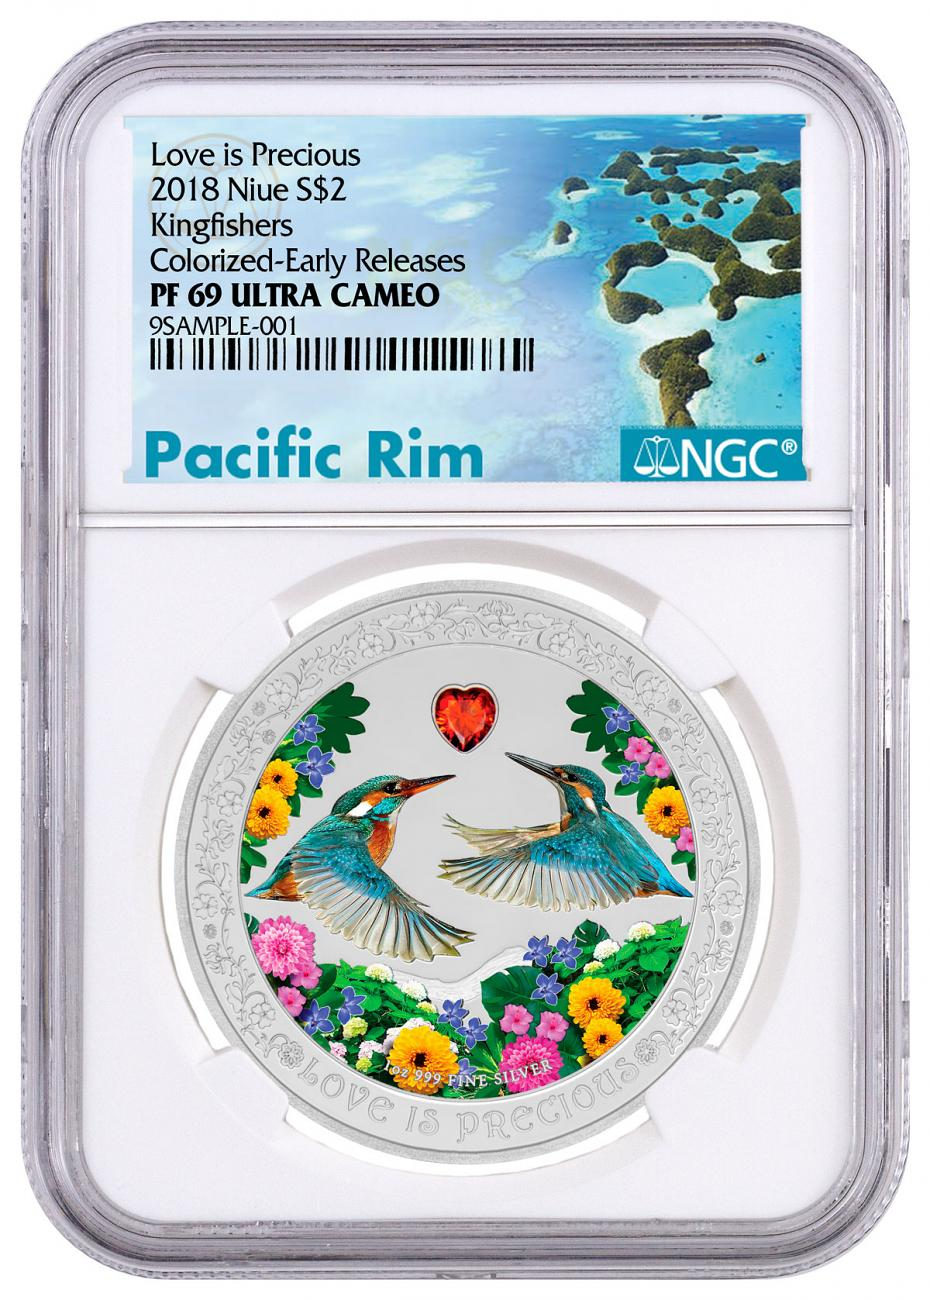 2018 Niue Love is Precious - Kingfishers 1 oz Silver Colorized Proof $2 Coin NGC PF69 UC ER Exclusive Pacific Rim Label